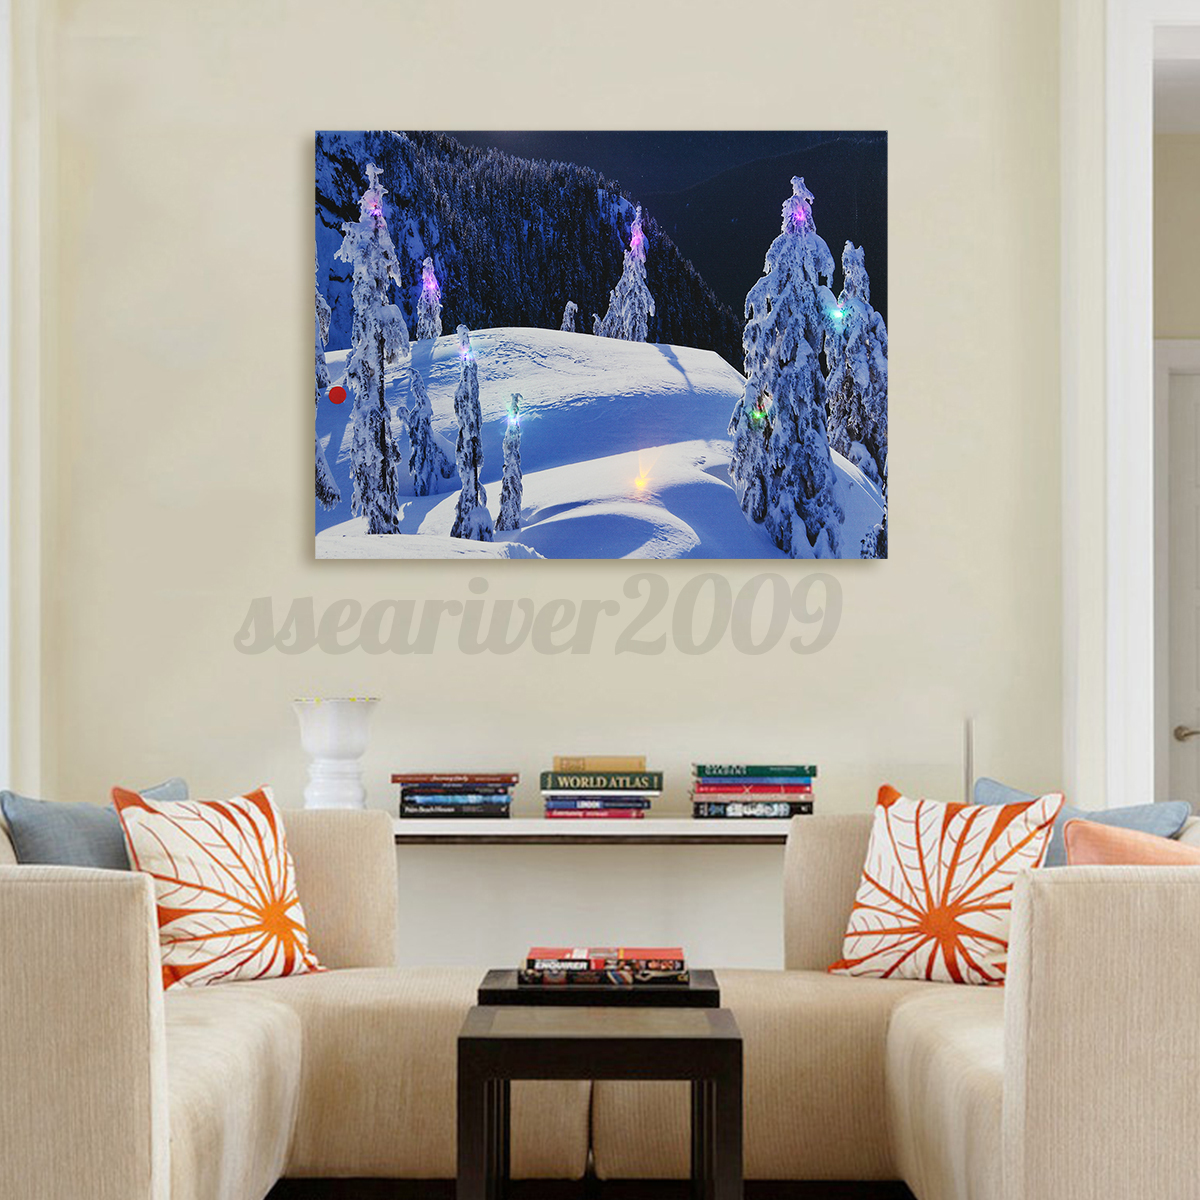 Hanging up wall decor : Winter snow canvas painting led light up pictures art home